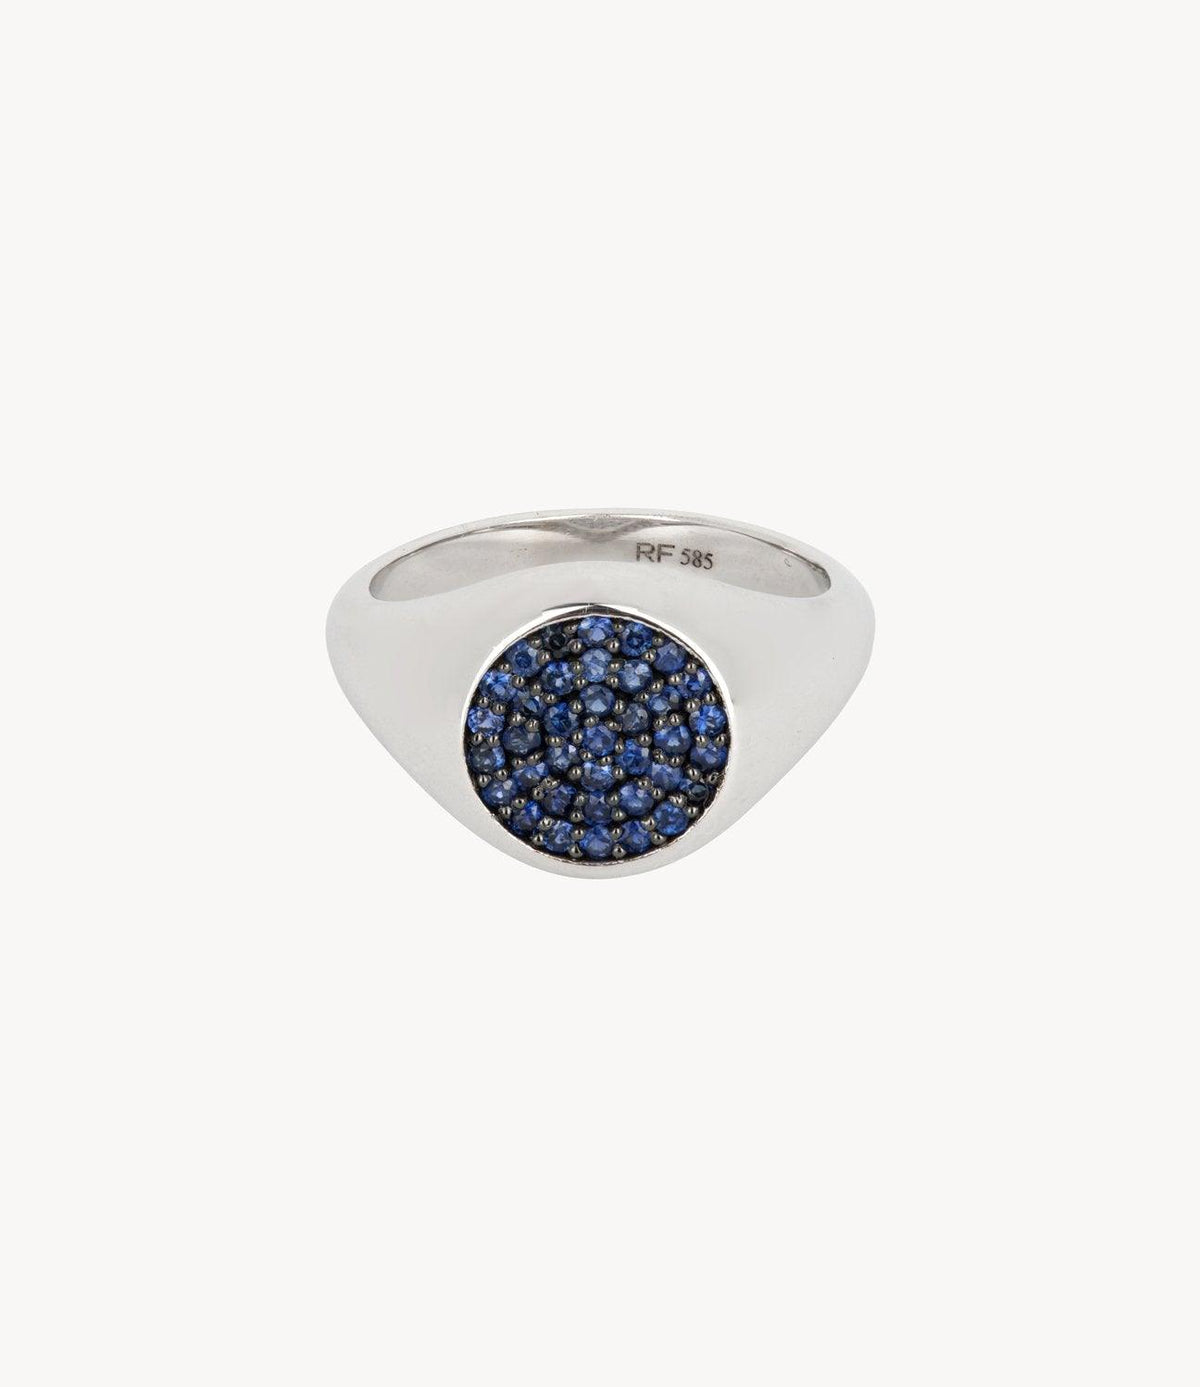 Blue Sapphire Signet Ring